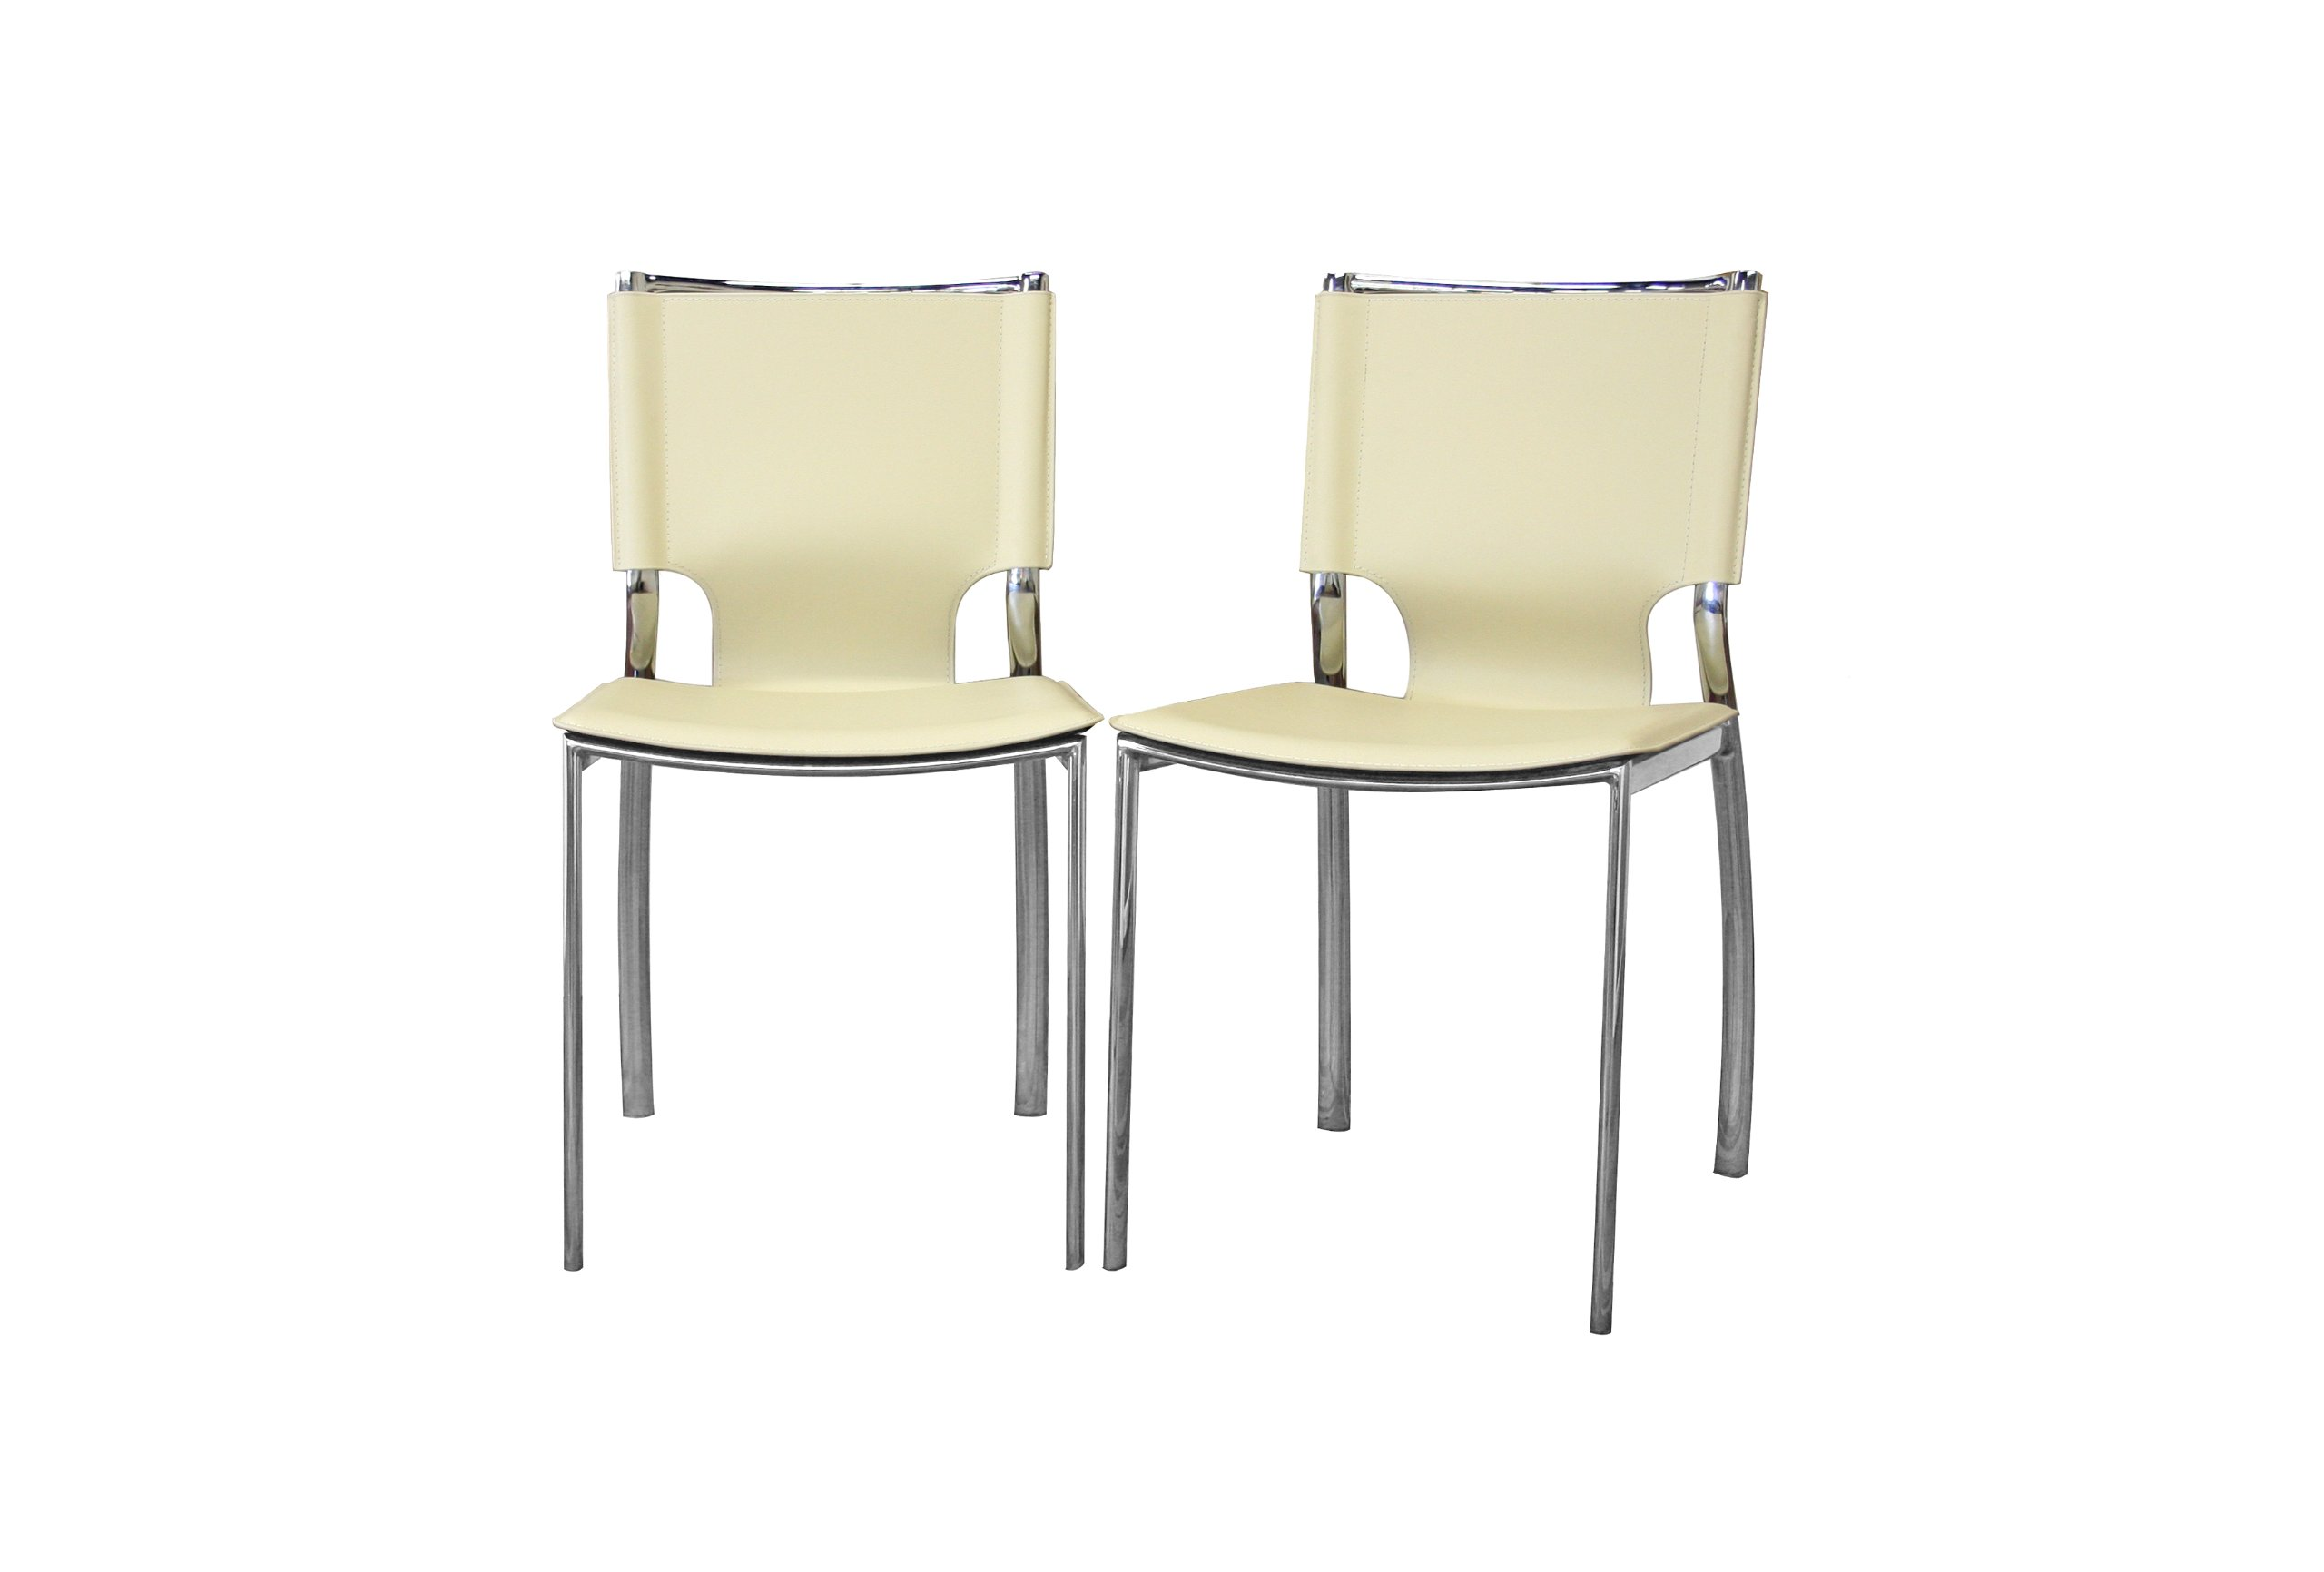 Baxton Studio Montclare Ivory Leather Modern Dining Chair Set of